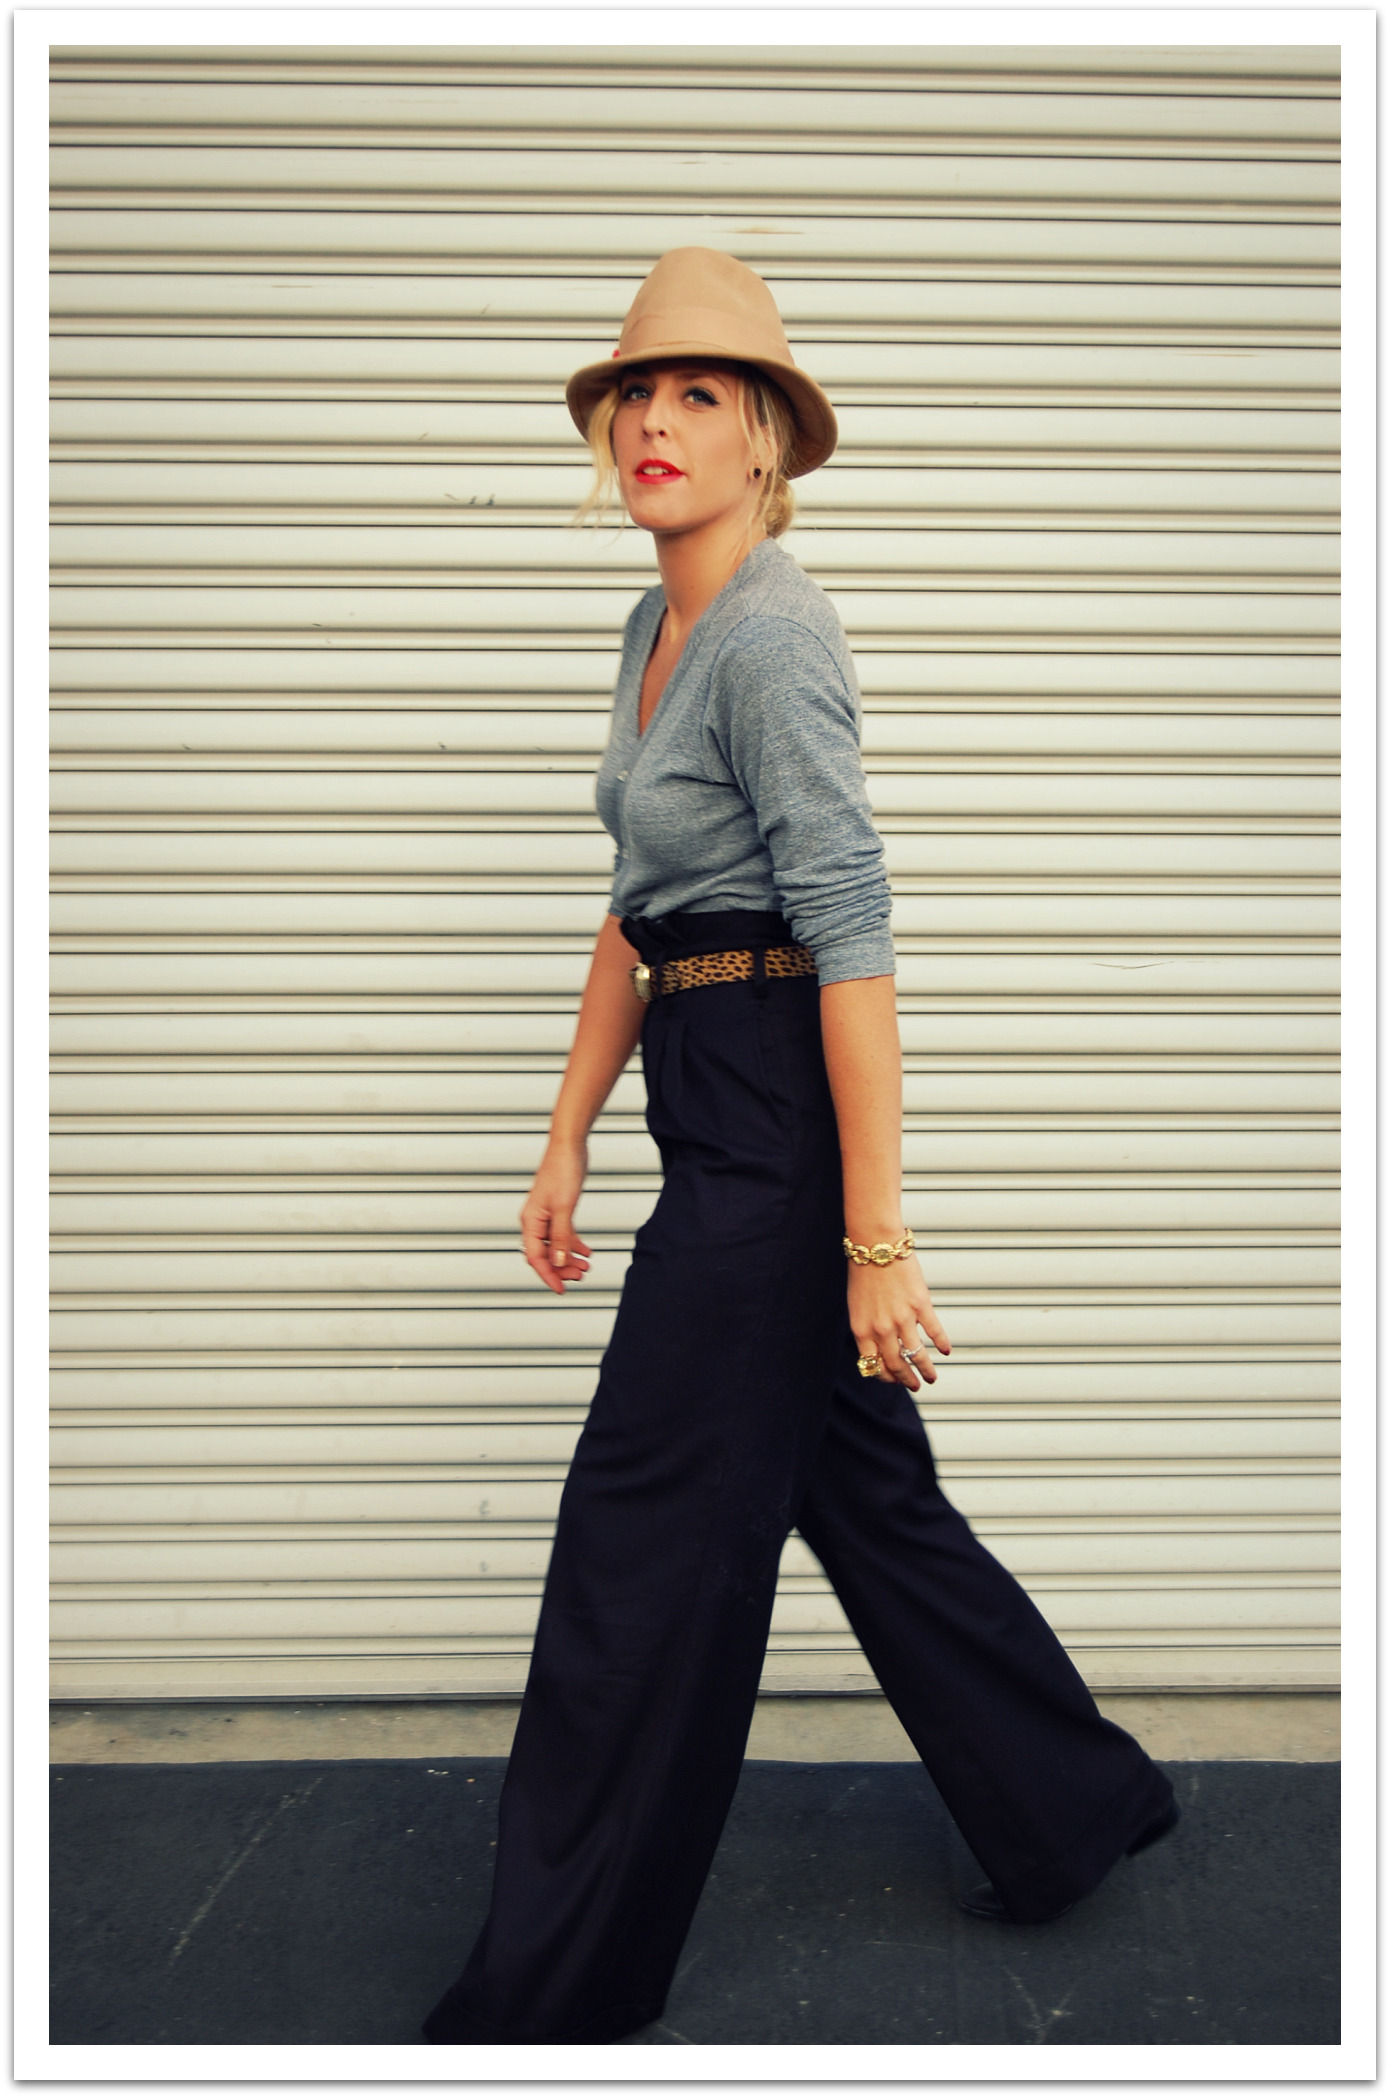 Linen Blend Wide Leg Pants by ellos® $ $ Refine Your Results By: Shop by Category Jeans Skinny Leg Jeans Straight Leg Jeans Boyfriend Jeans Bootcut Jeans Fashion Jeans Wide Leg Jeans Crop & Capri Pants Straight Pants Bootcut Pants Skinny Pants Wide Leg Pants Crop & Capri Pants Leggings Jeggings.